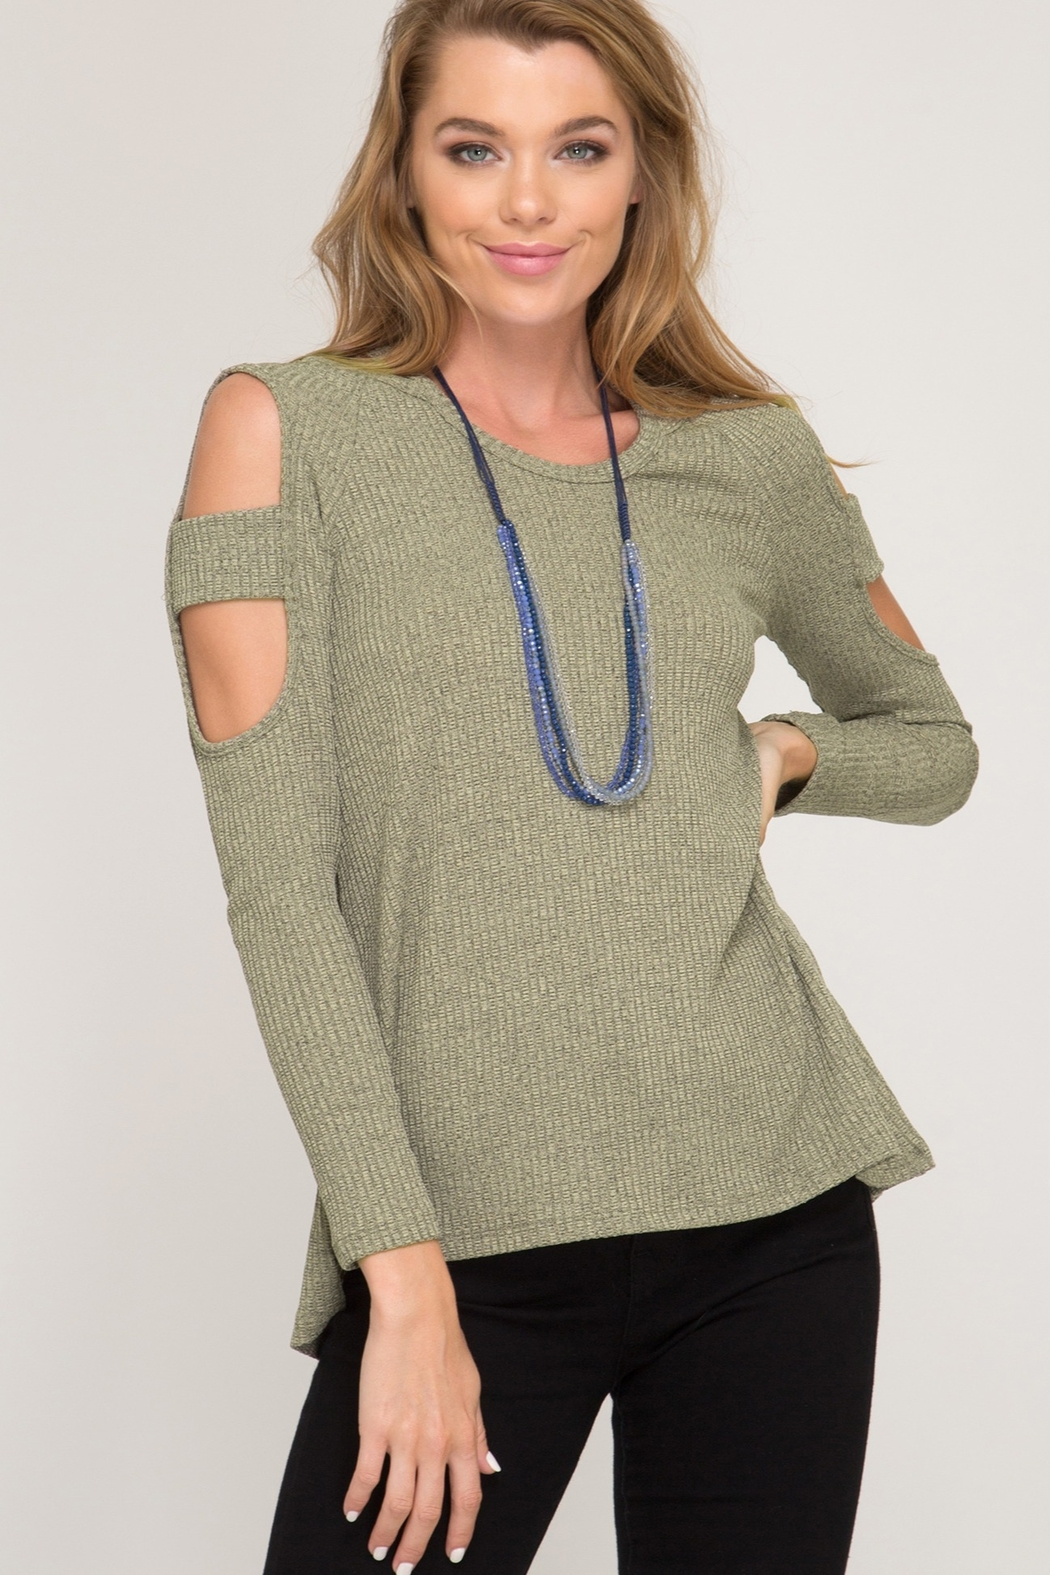 She and Sky LONG SLEEVE TWO TONE RIBBED TOP - Main Image